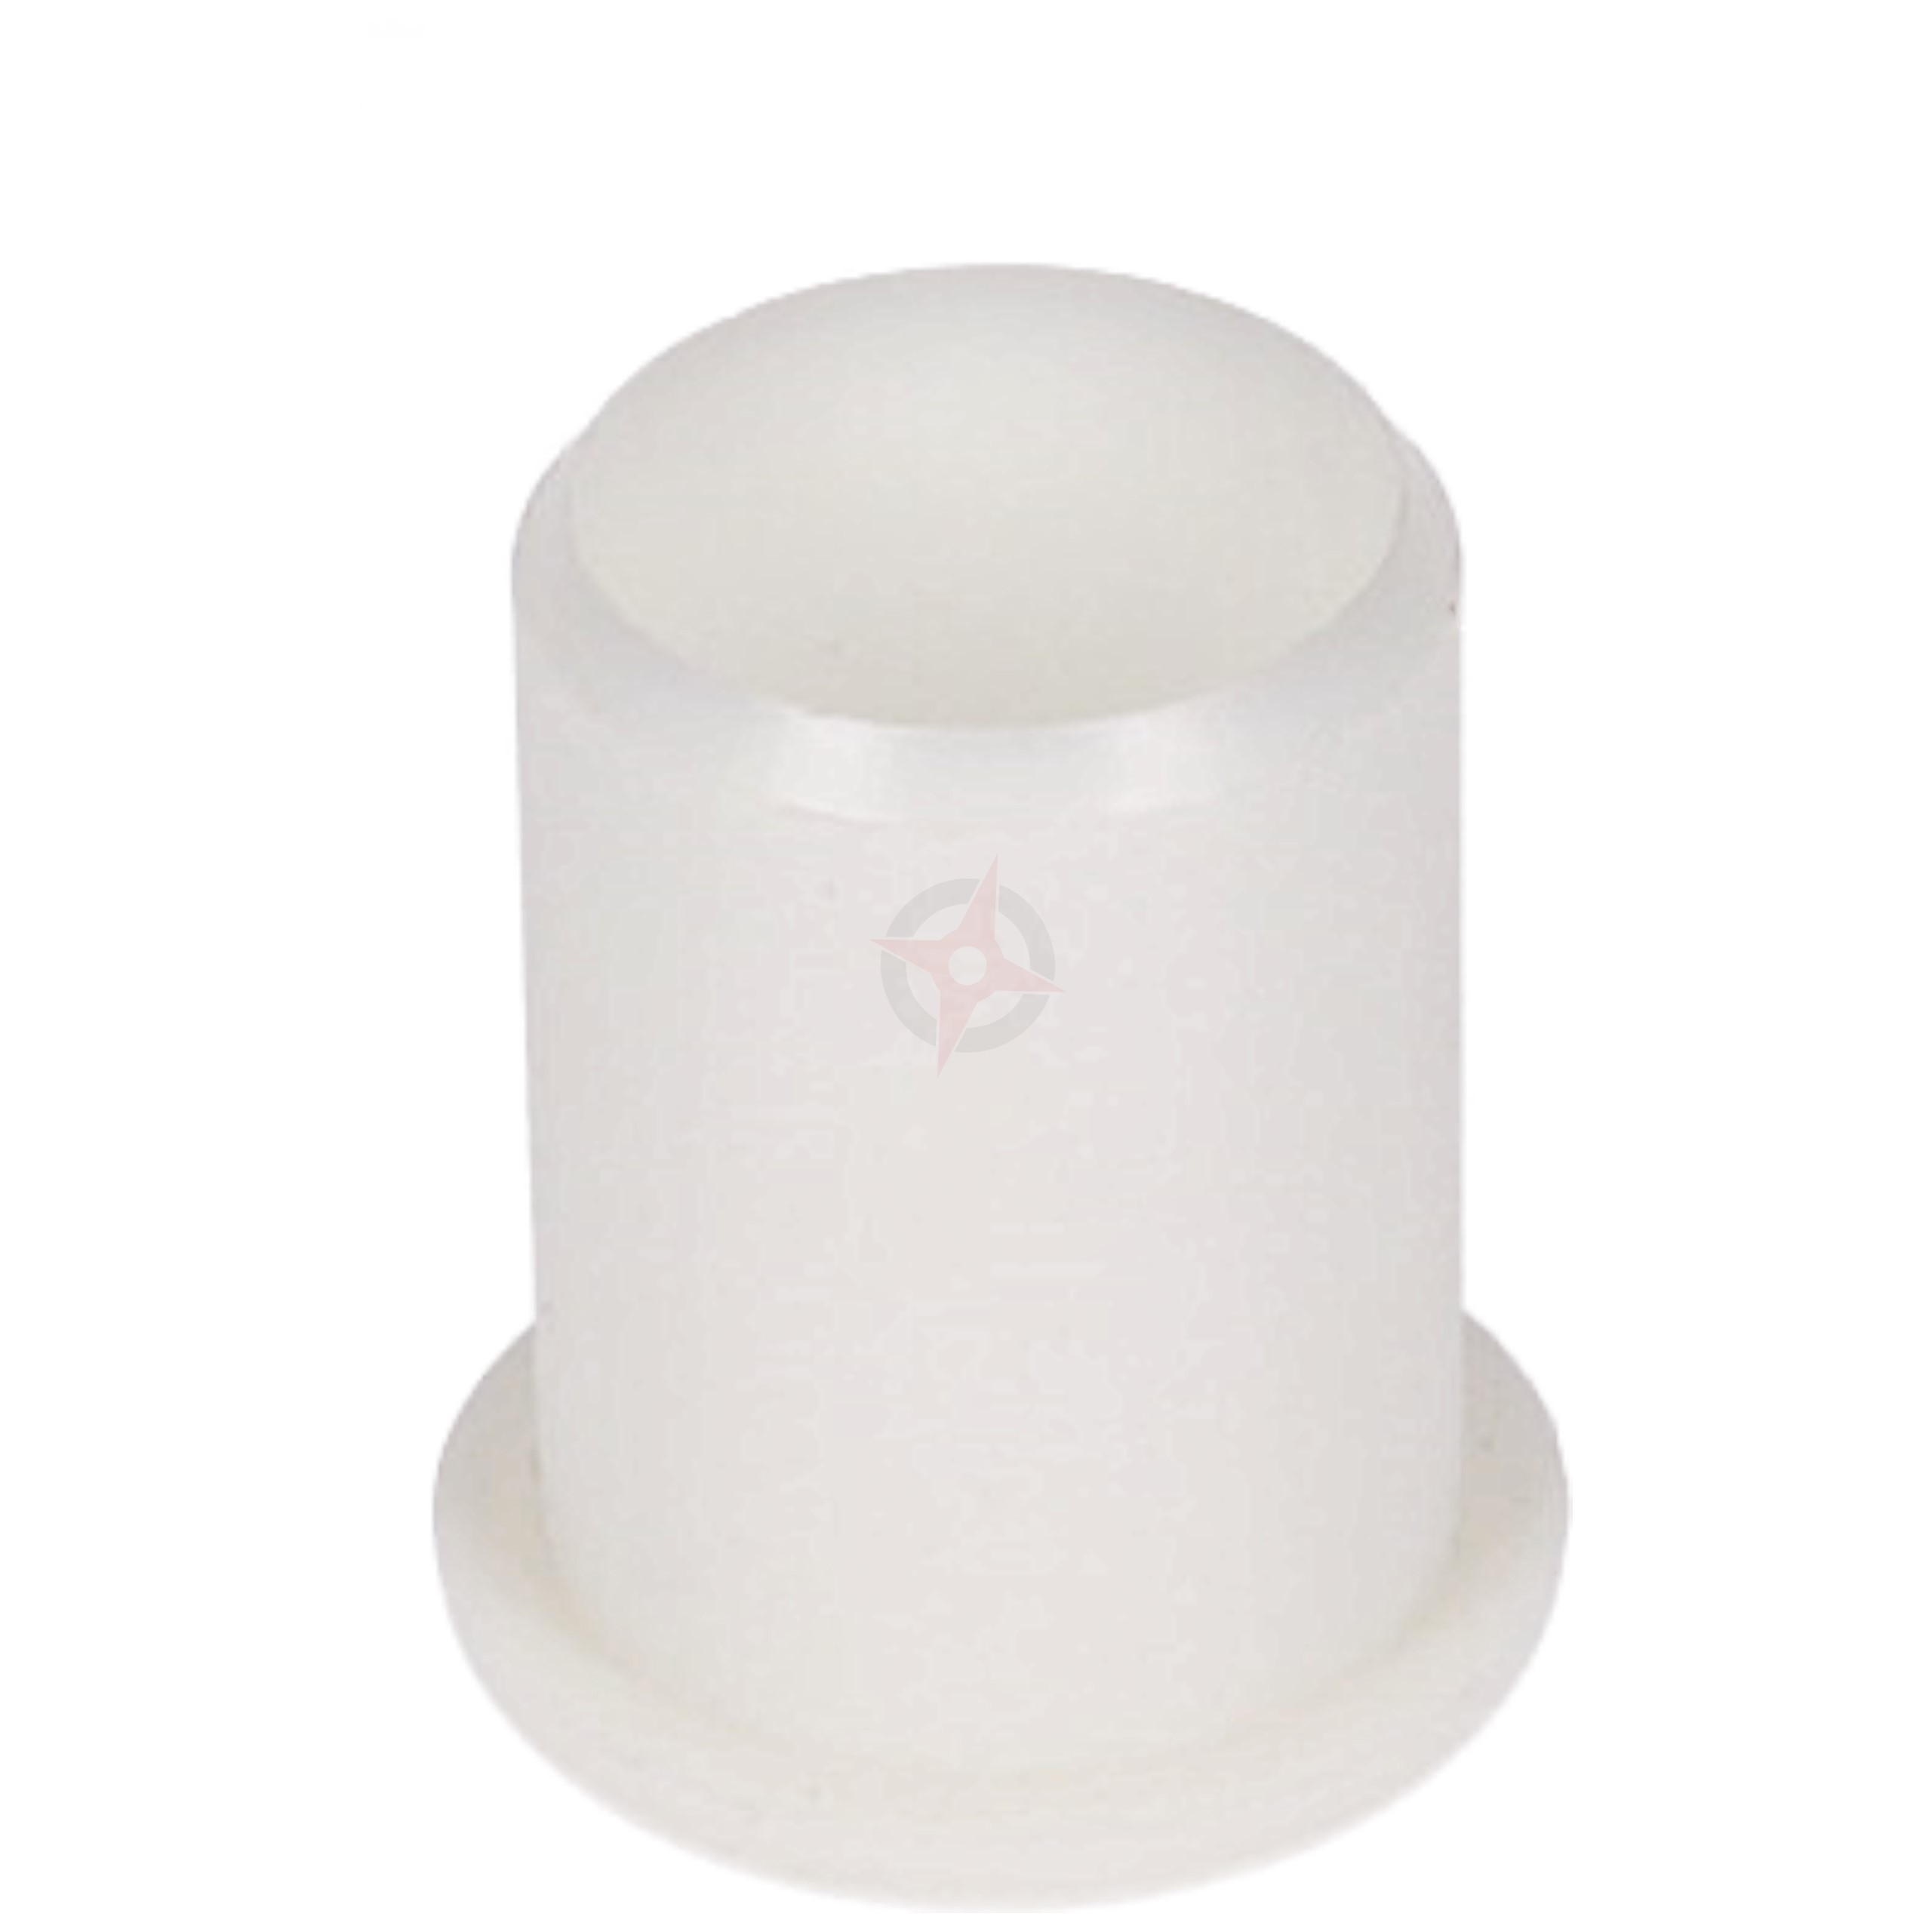 Whitespeed Push Fit 22mm Insert